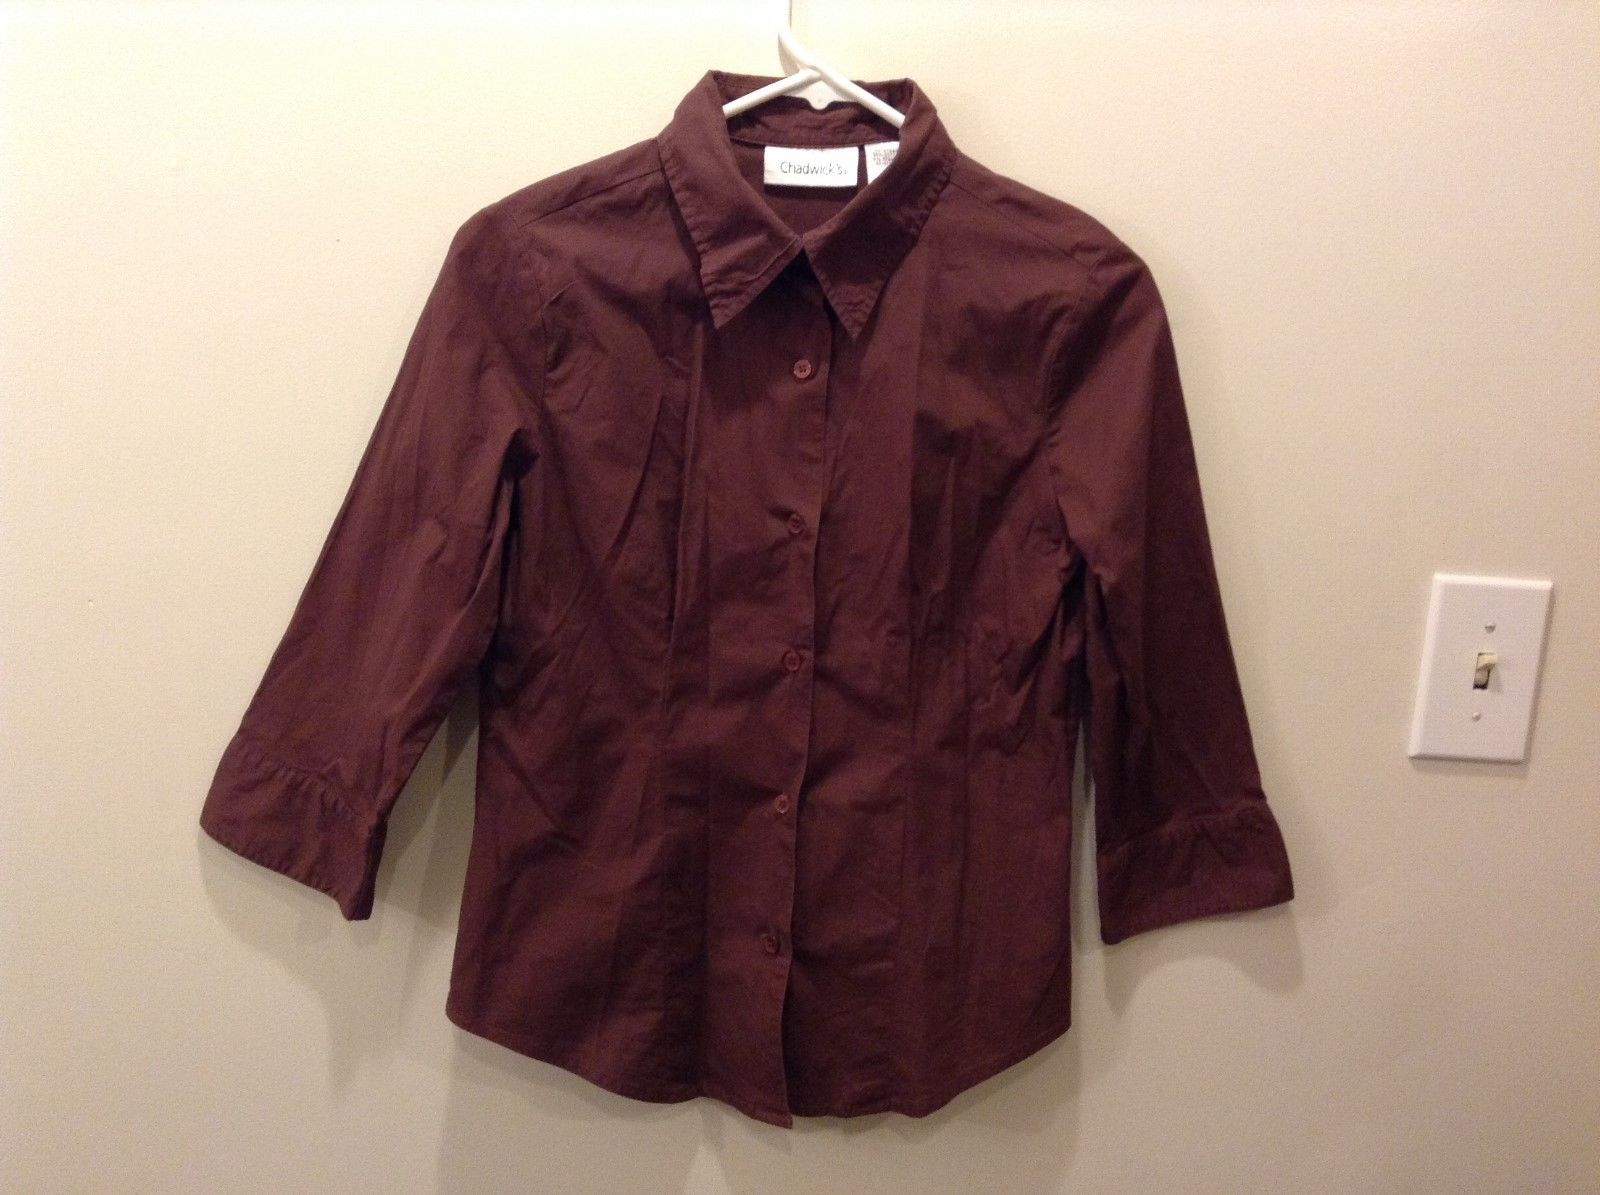 Chadwick's Maroon 3/4 Sleeve Button Up Shirt w/ Matching Buttons Size Small